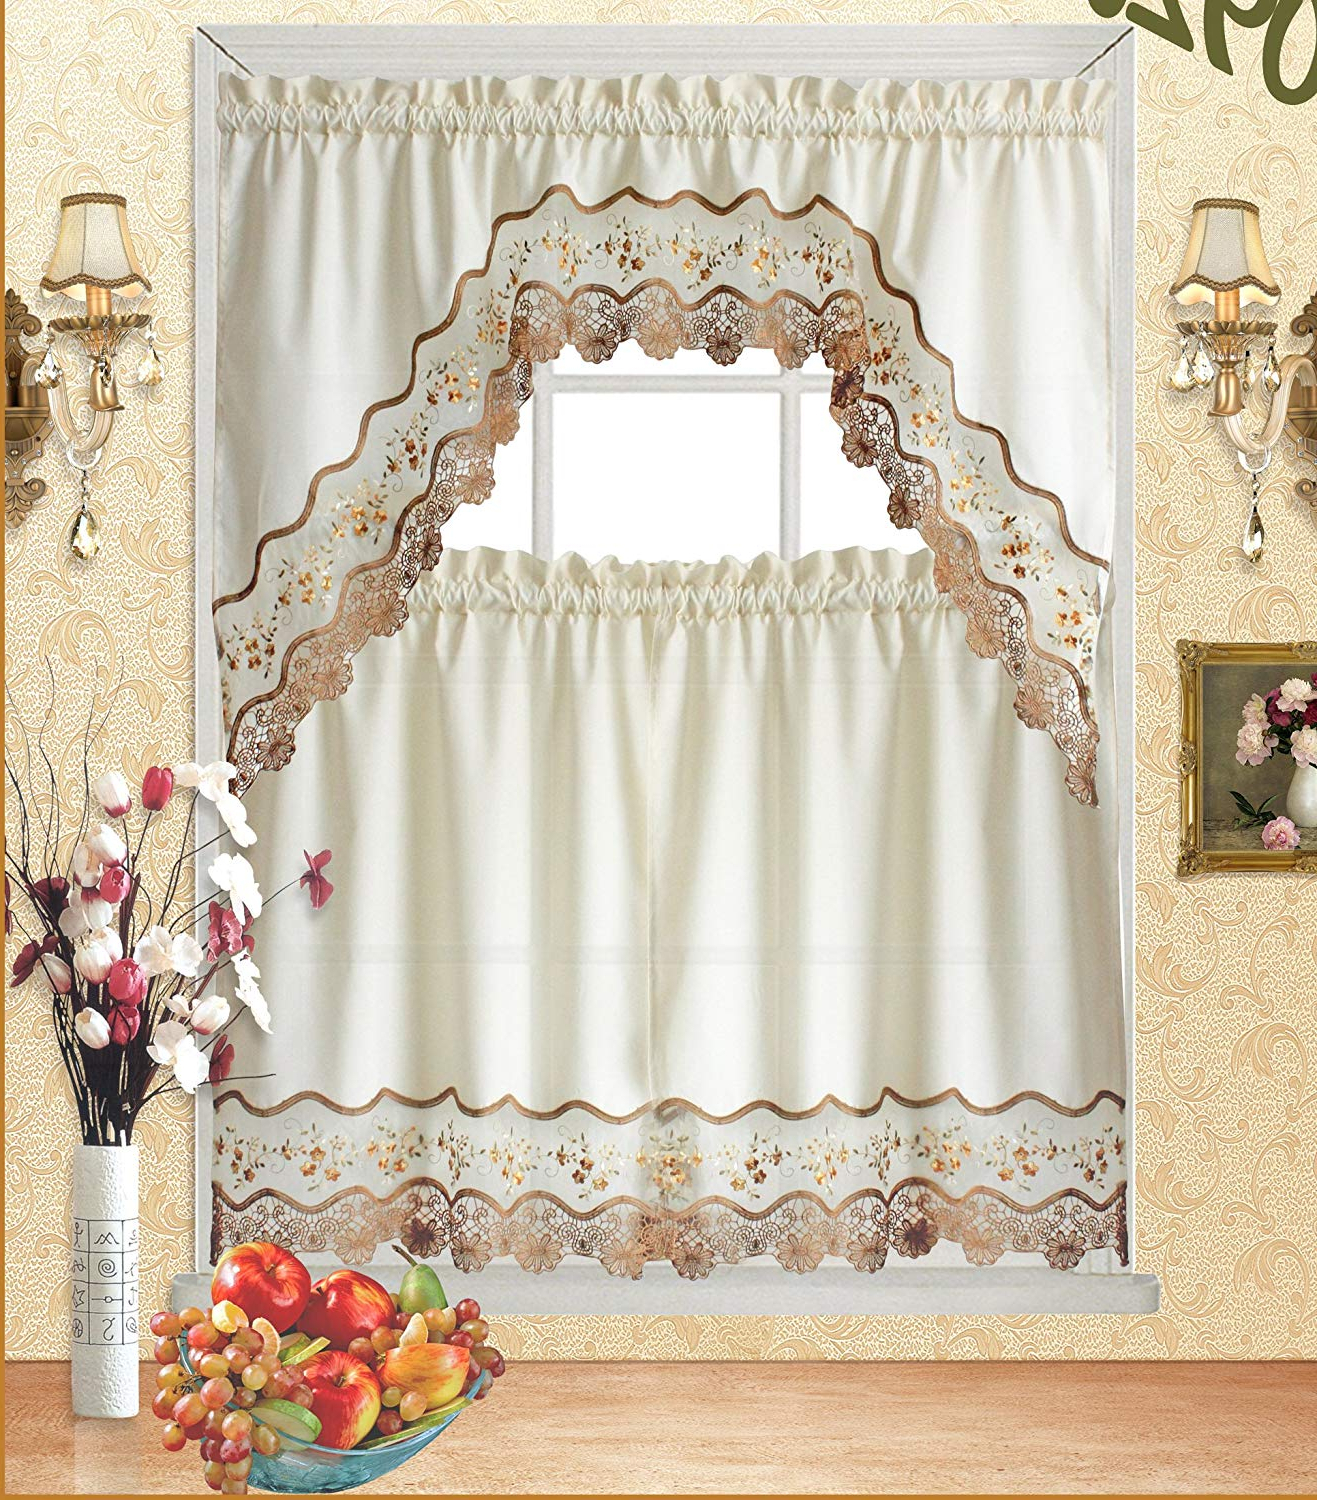 "Fashionable Fancy Collection 3Pc Beige With Embroidery Floral Kitchen/cafe Curtain Tier  And Valance Set 001092 (60"" X 38"", Gold/beige/beige) Within Cotton Blend Ivy Floral Tier Curtain And Swag Sets (Gallery 5 of 20)"